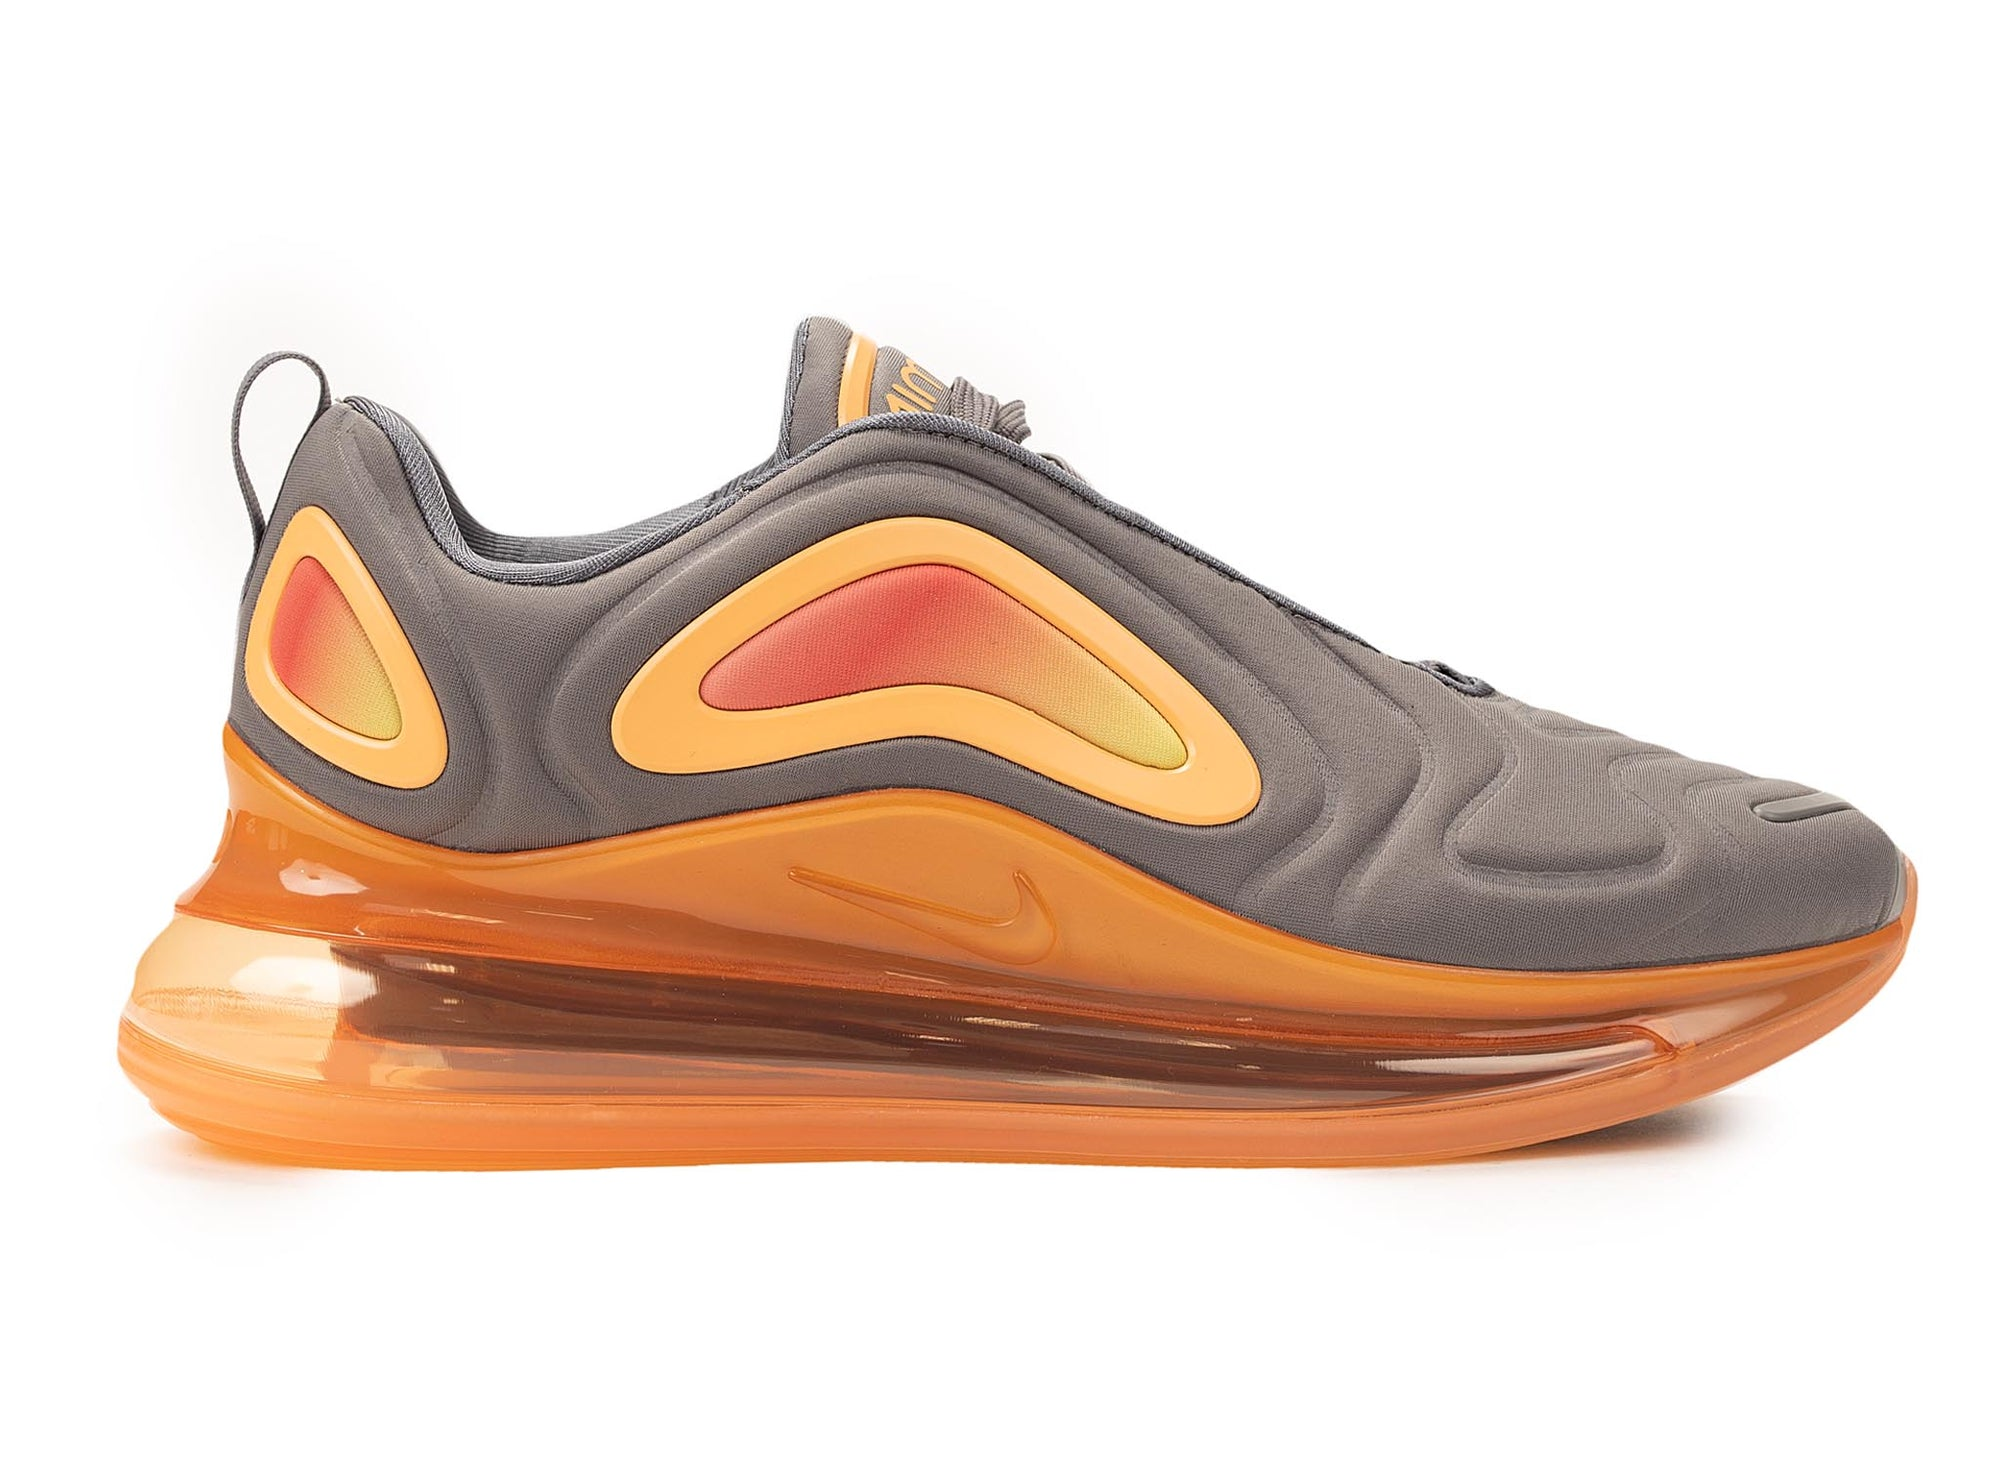 Nike Air Max 720 'Fuel Orange'